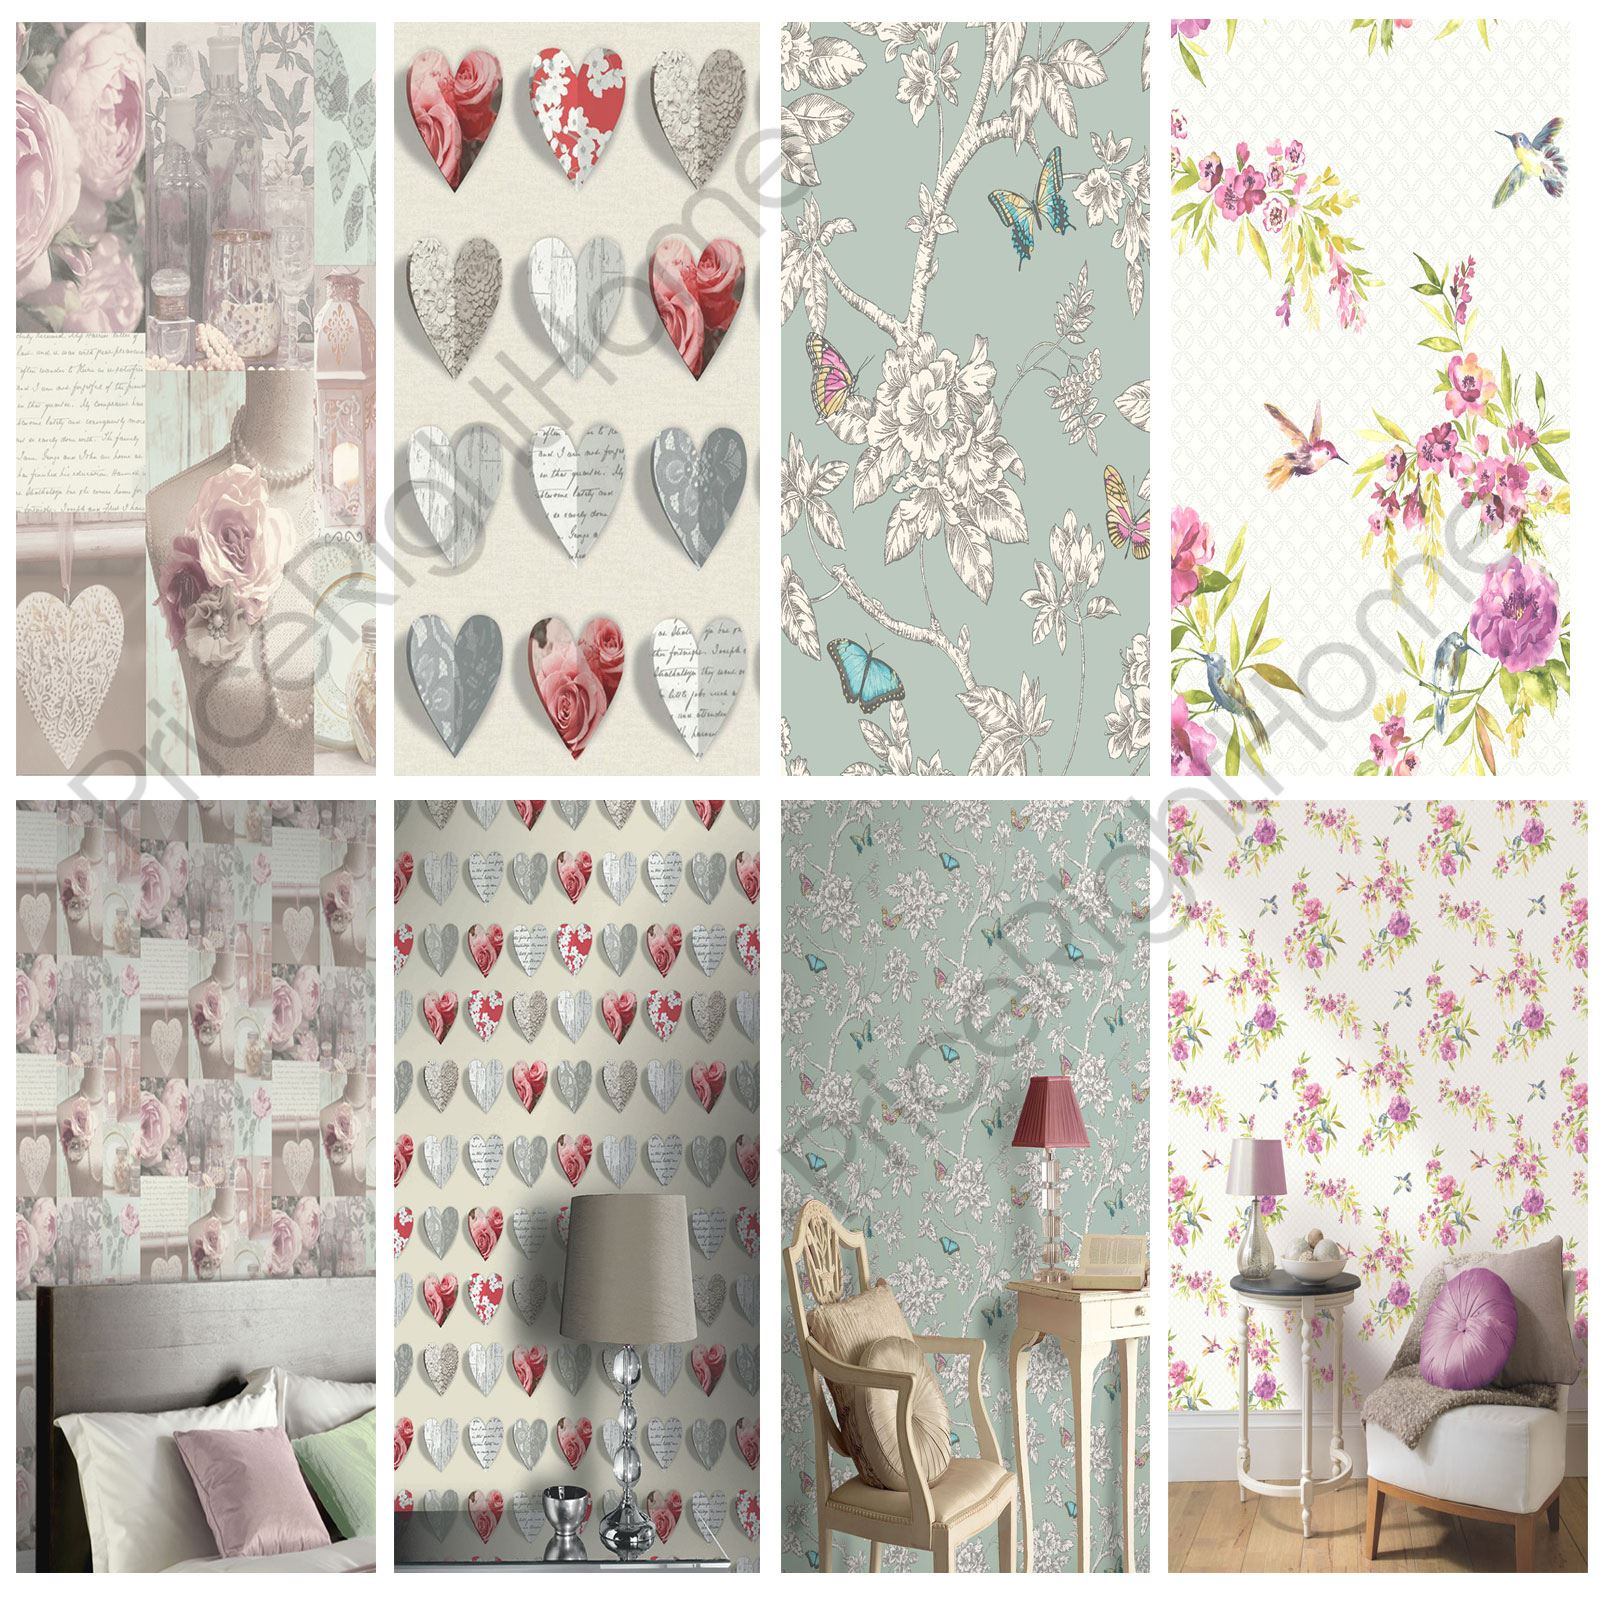 shabby chic floral wallpaper in various designs wall decor new free p p ebay. Black Bedroom Furniture Sets. Home Design Ideas